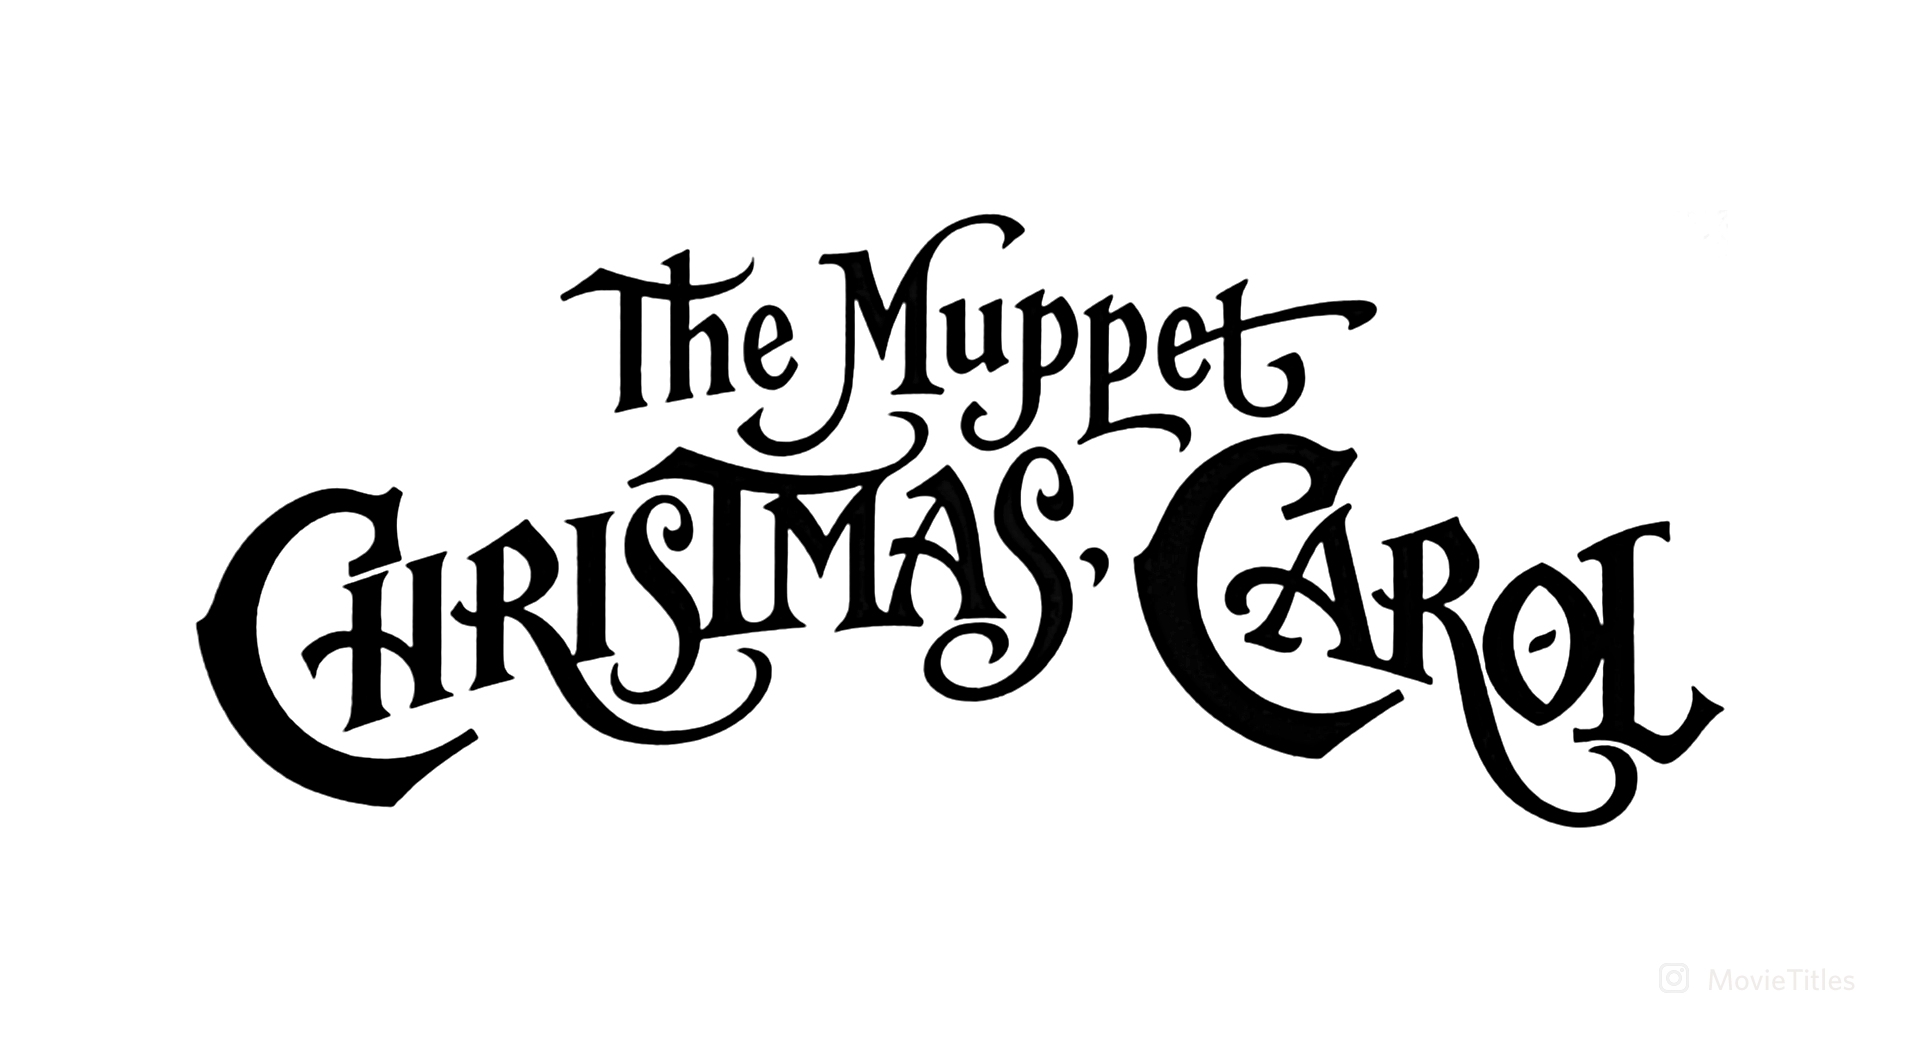 The Muppet Christmas Carol Trailer 1992.The Muppet Christmas Carol 1992 Movie Title Movie And